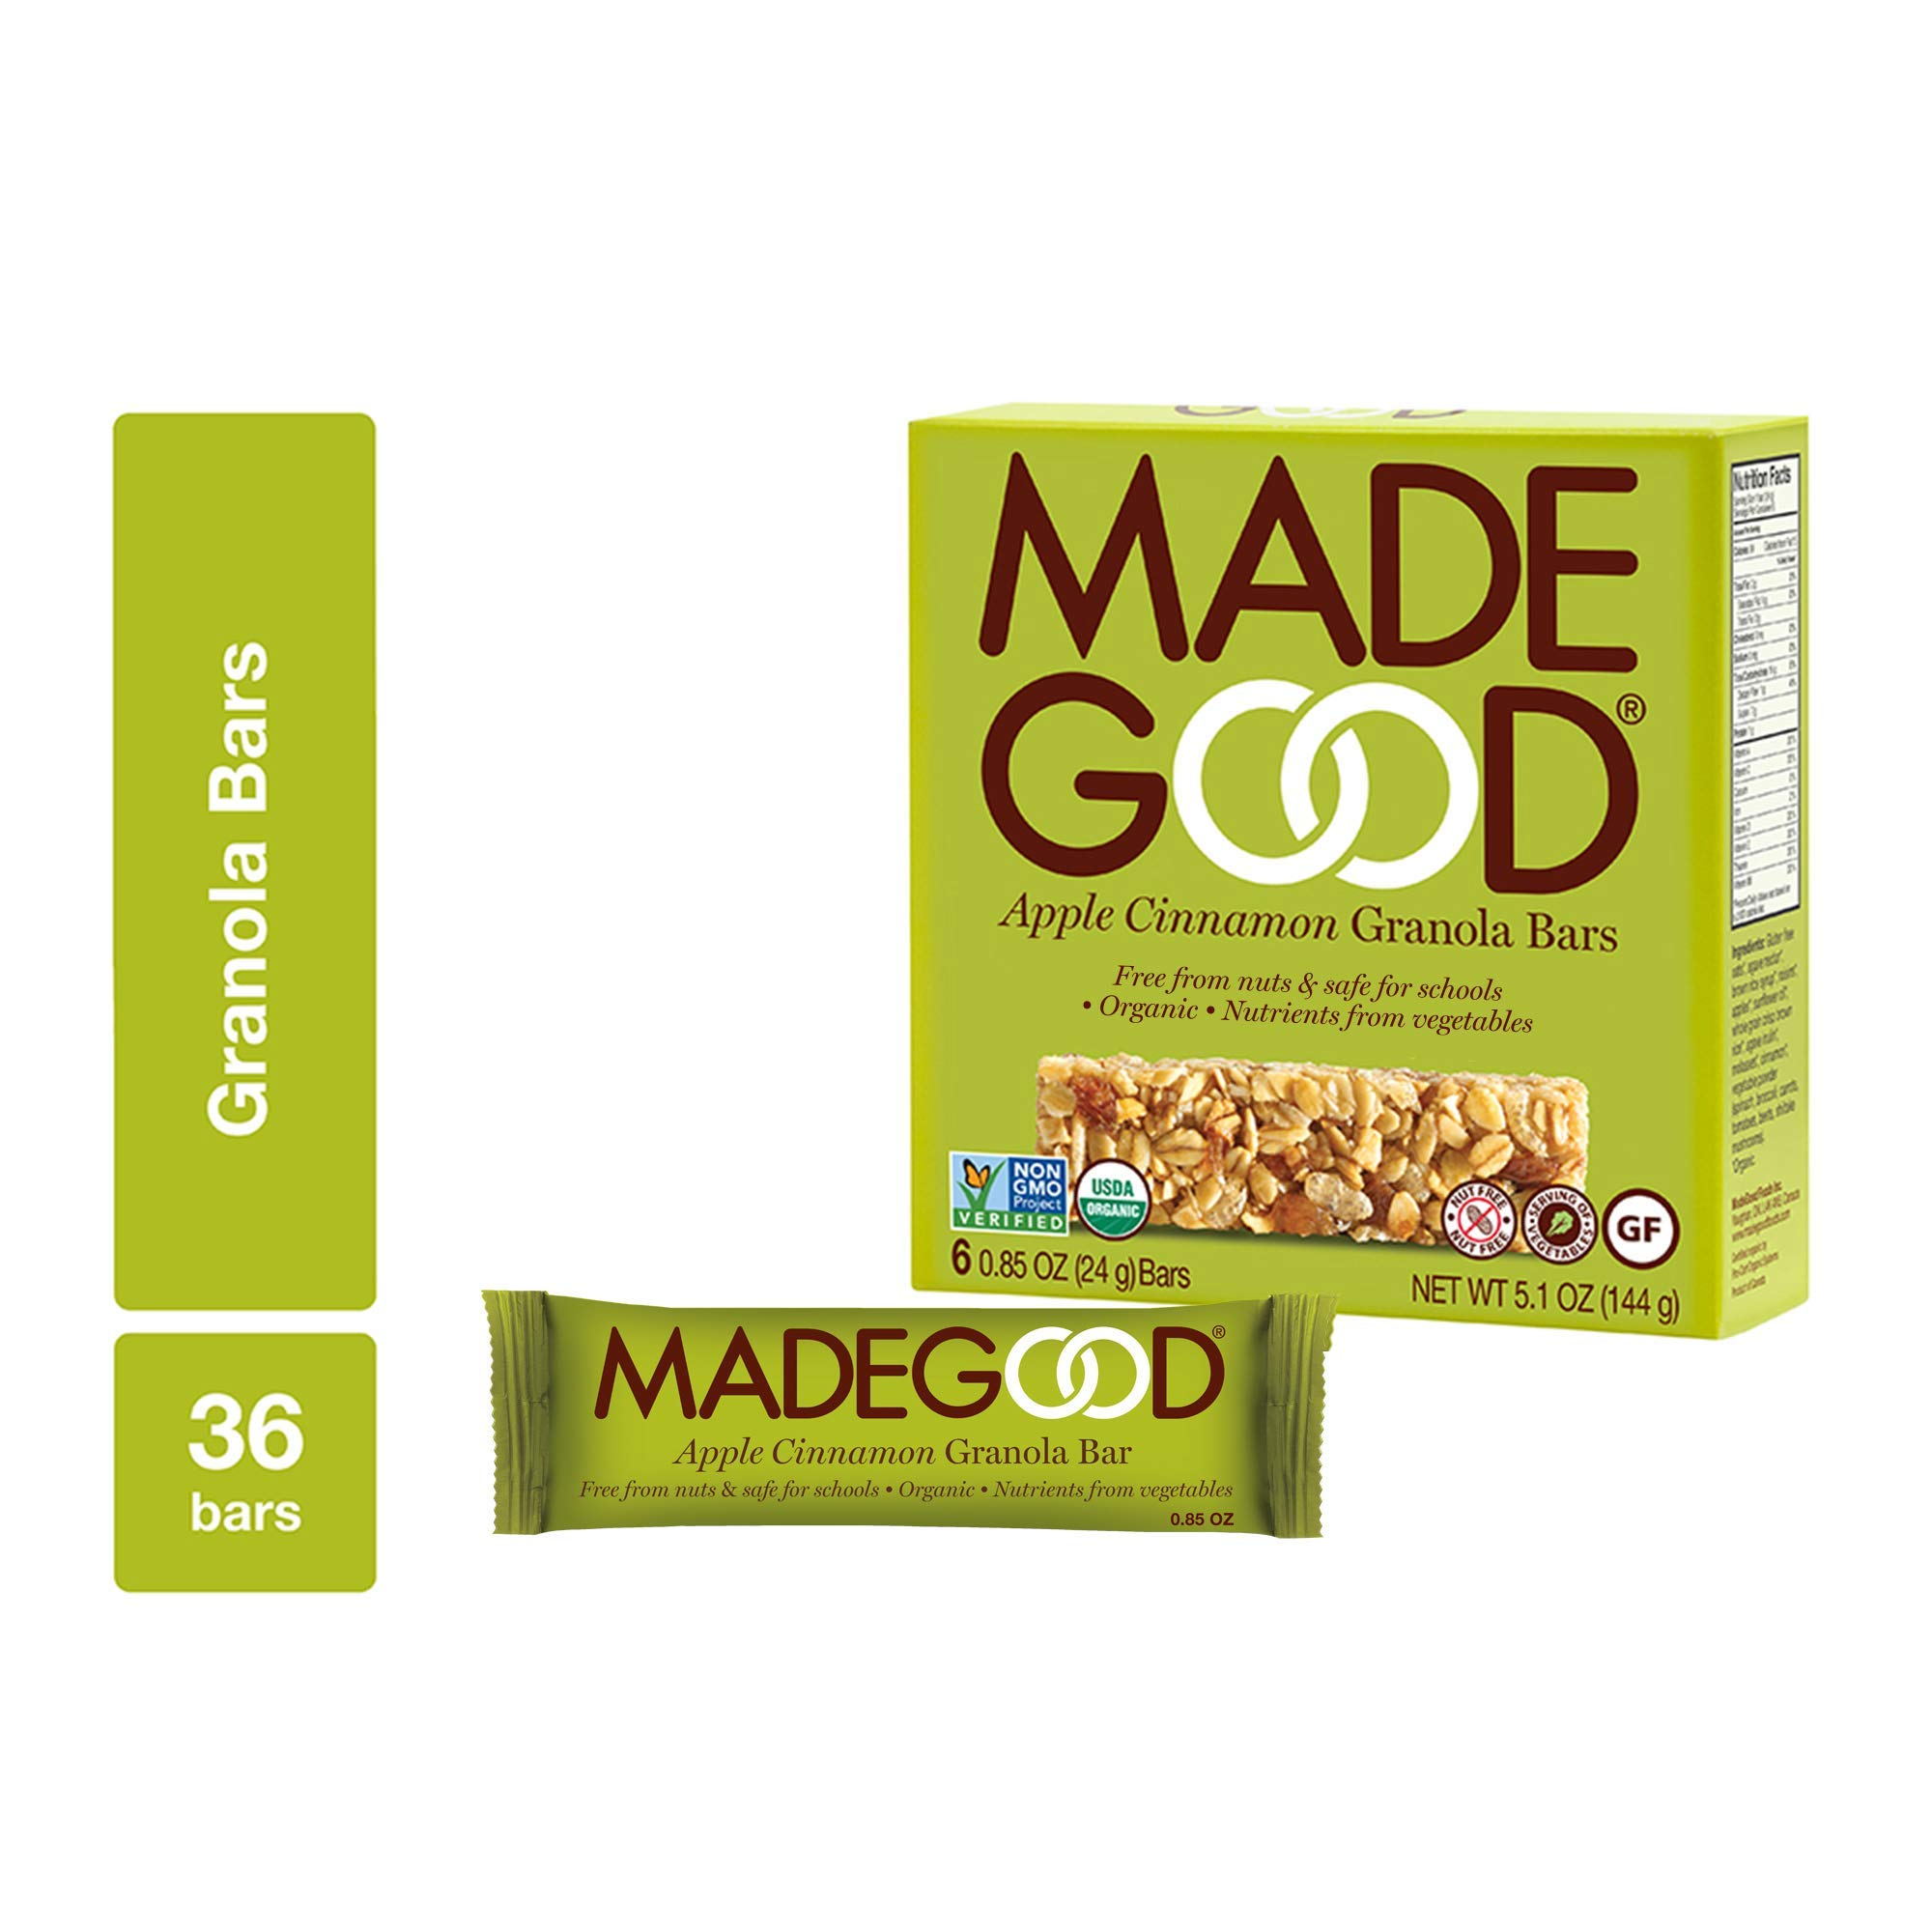 MadeGood Apple Cinnamon Granola Bars, 6 Pack (36 ct, .85 ounce); Contain Nutrients of One Serving of Vegetables; Gluten-Free Oats, Sweet Apples and Spicy Cinnamon; Nut and Allergen-Free Bars by Made Good